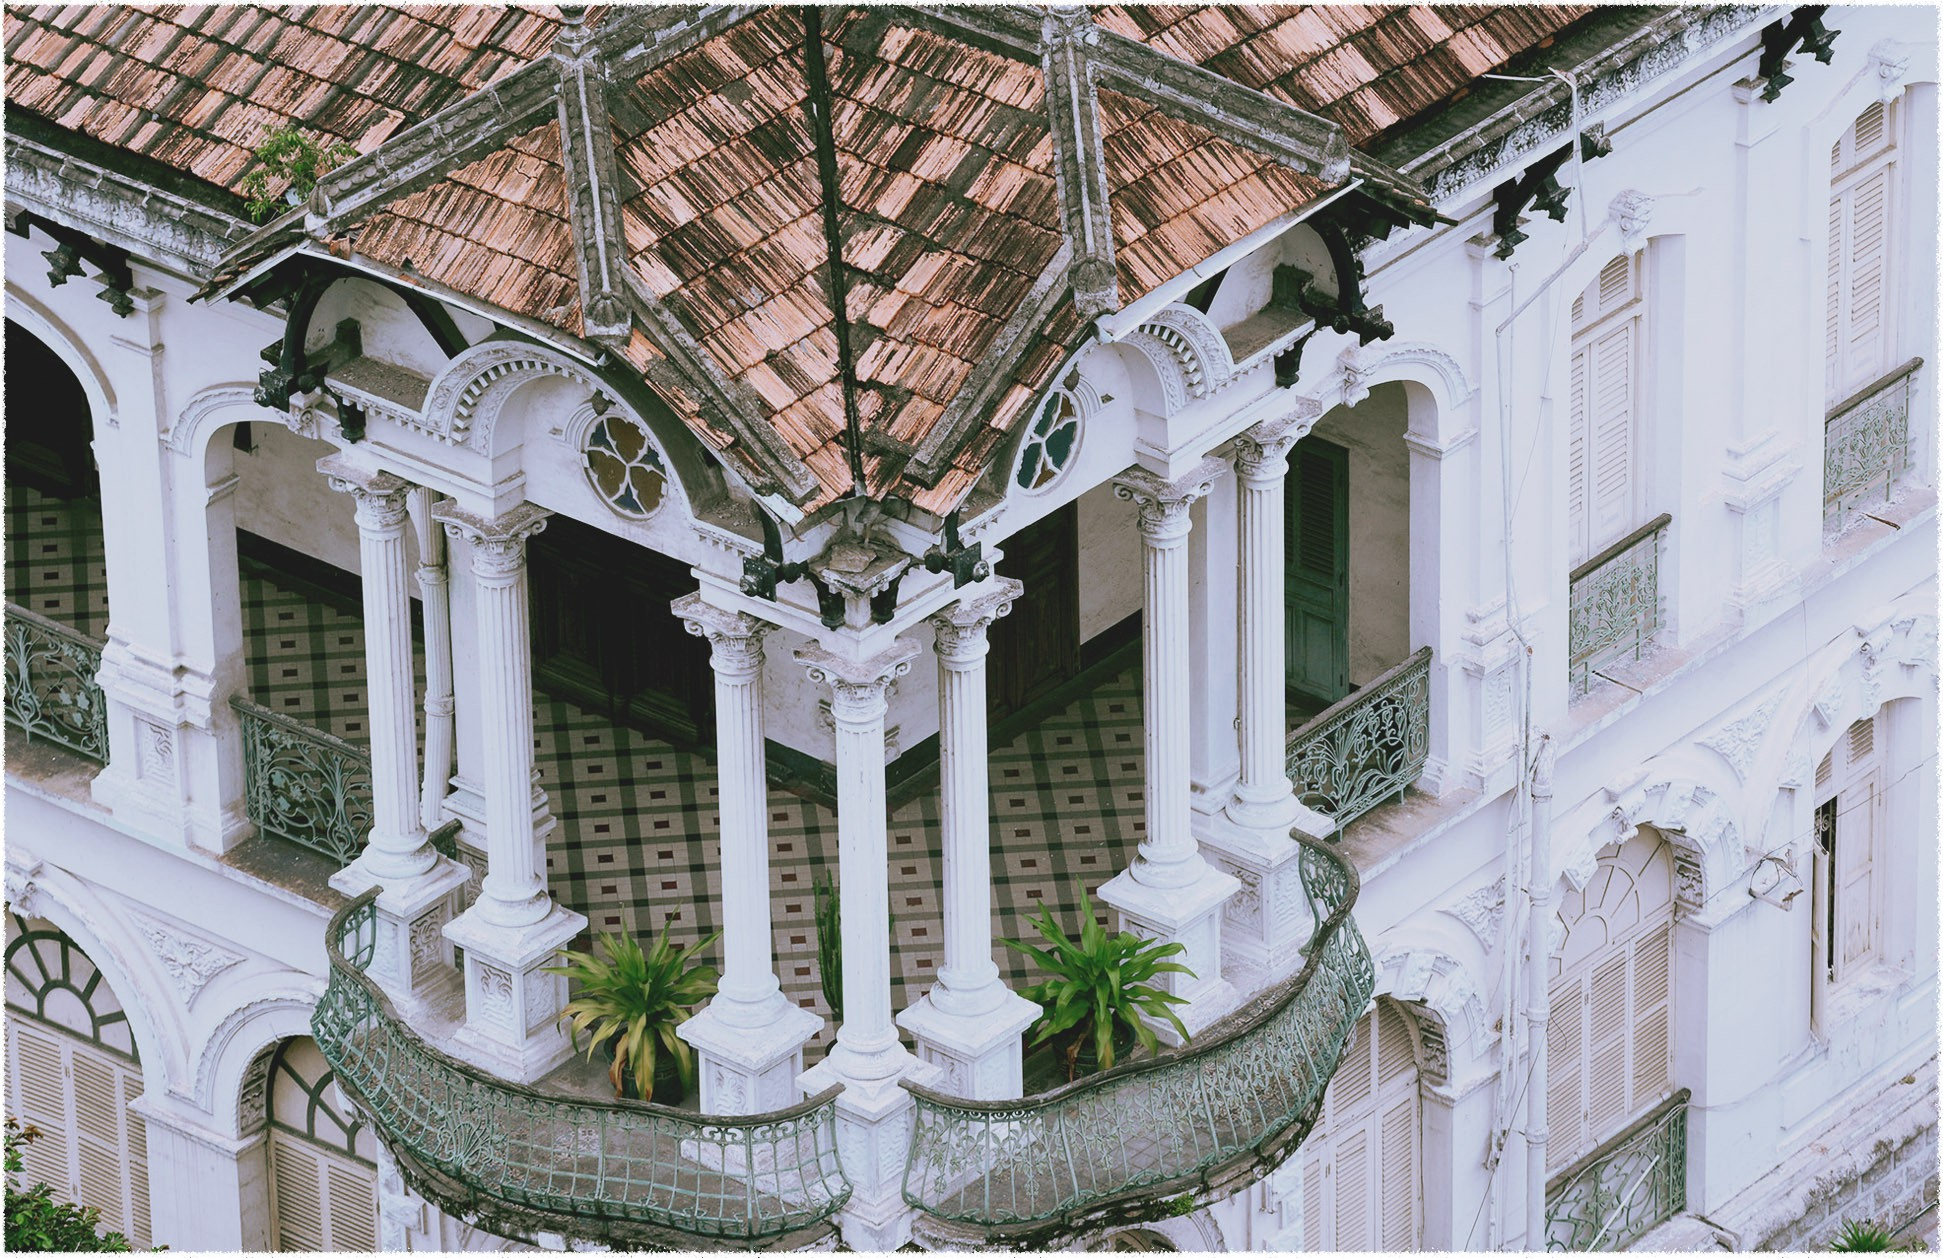 Ho Chi Minh City indexes French-era villas for conservation